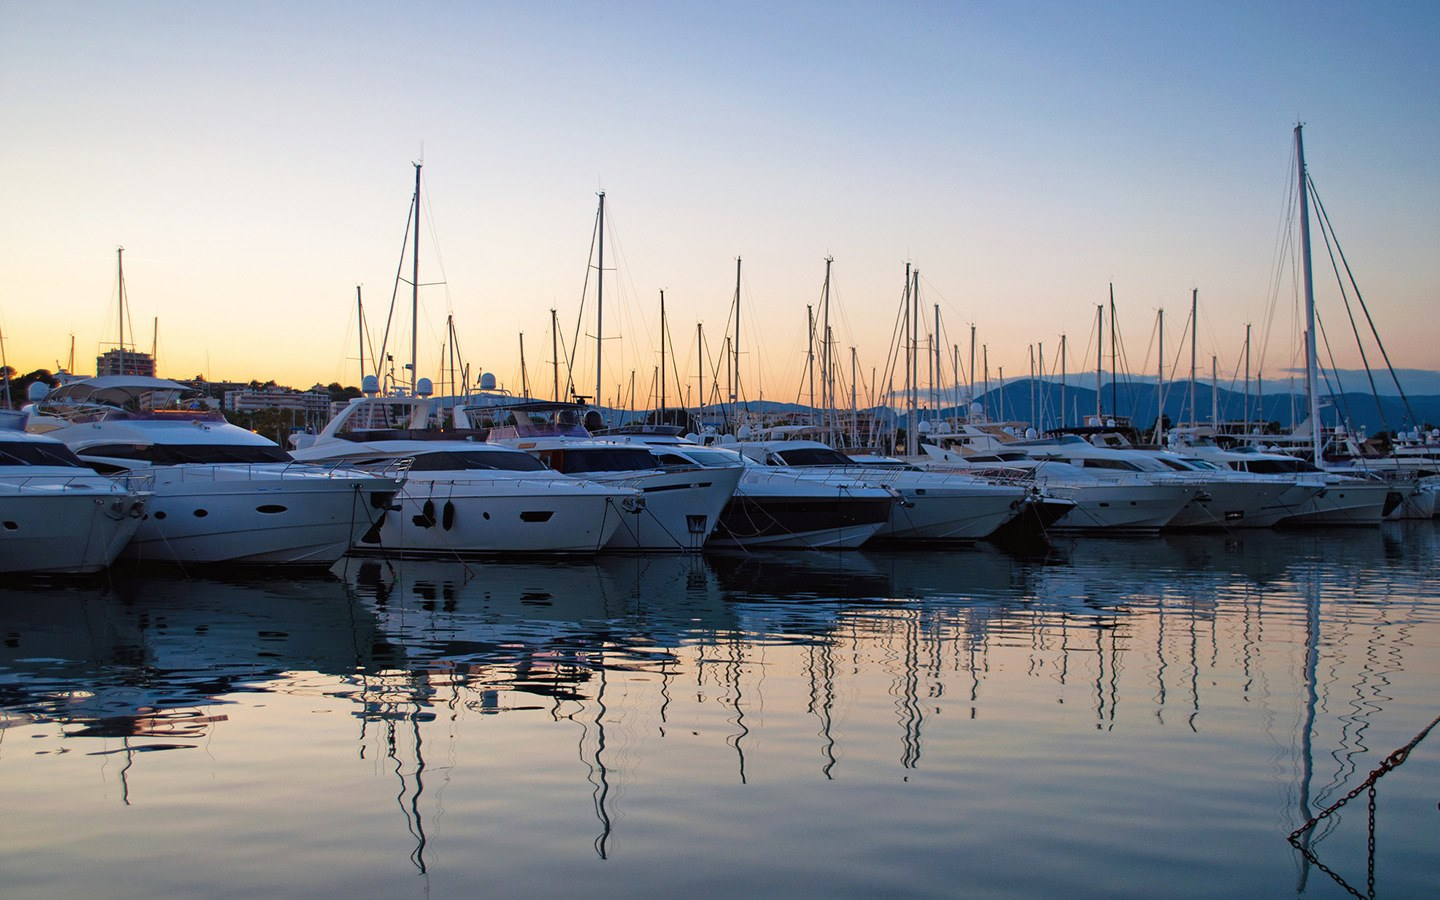 Yachts in the harbour in Antibes, South of France